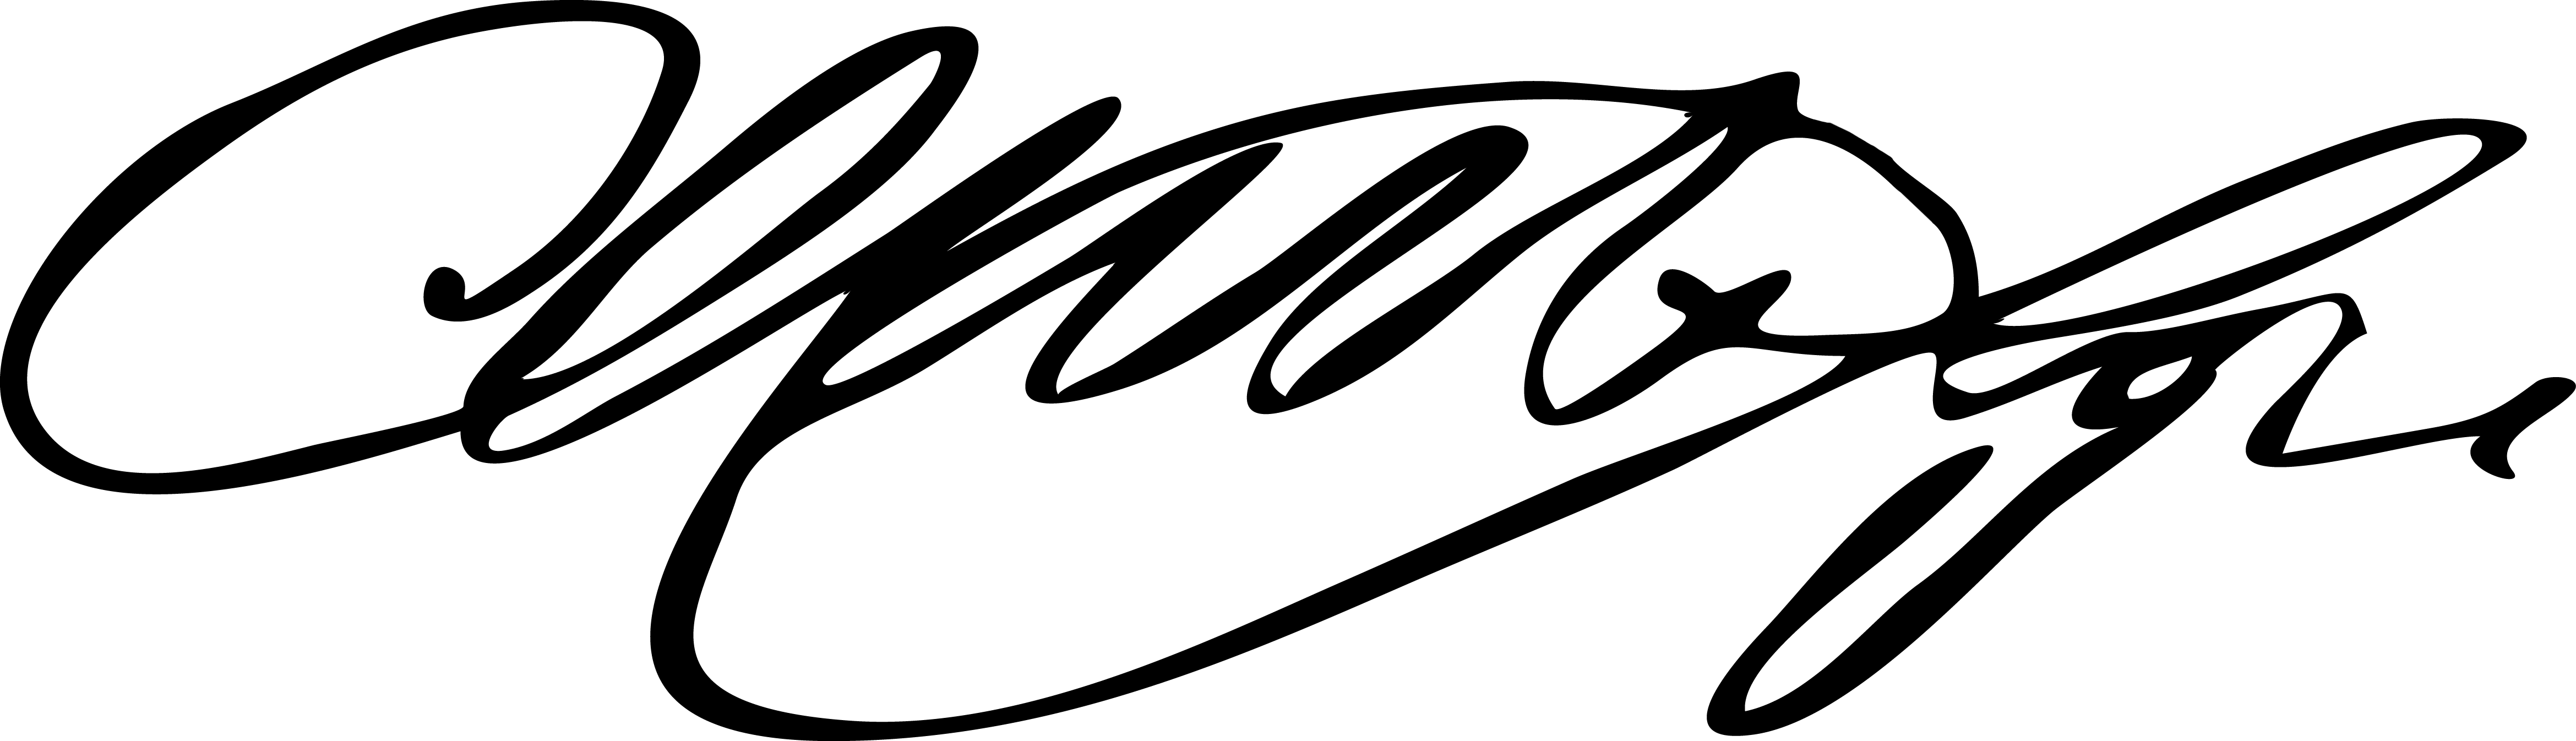 Christina Lavigne Signature